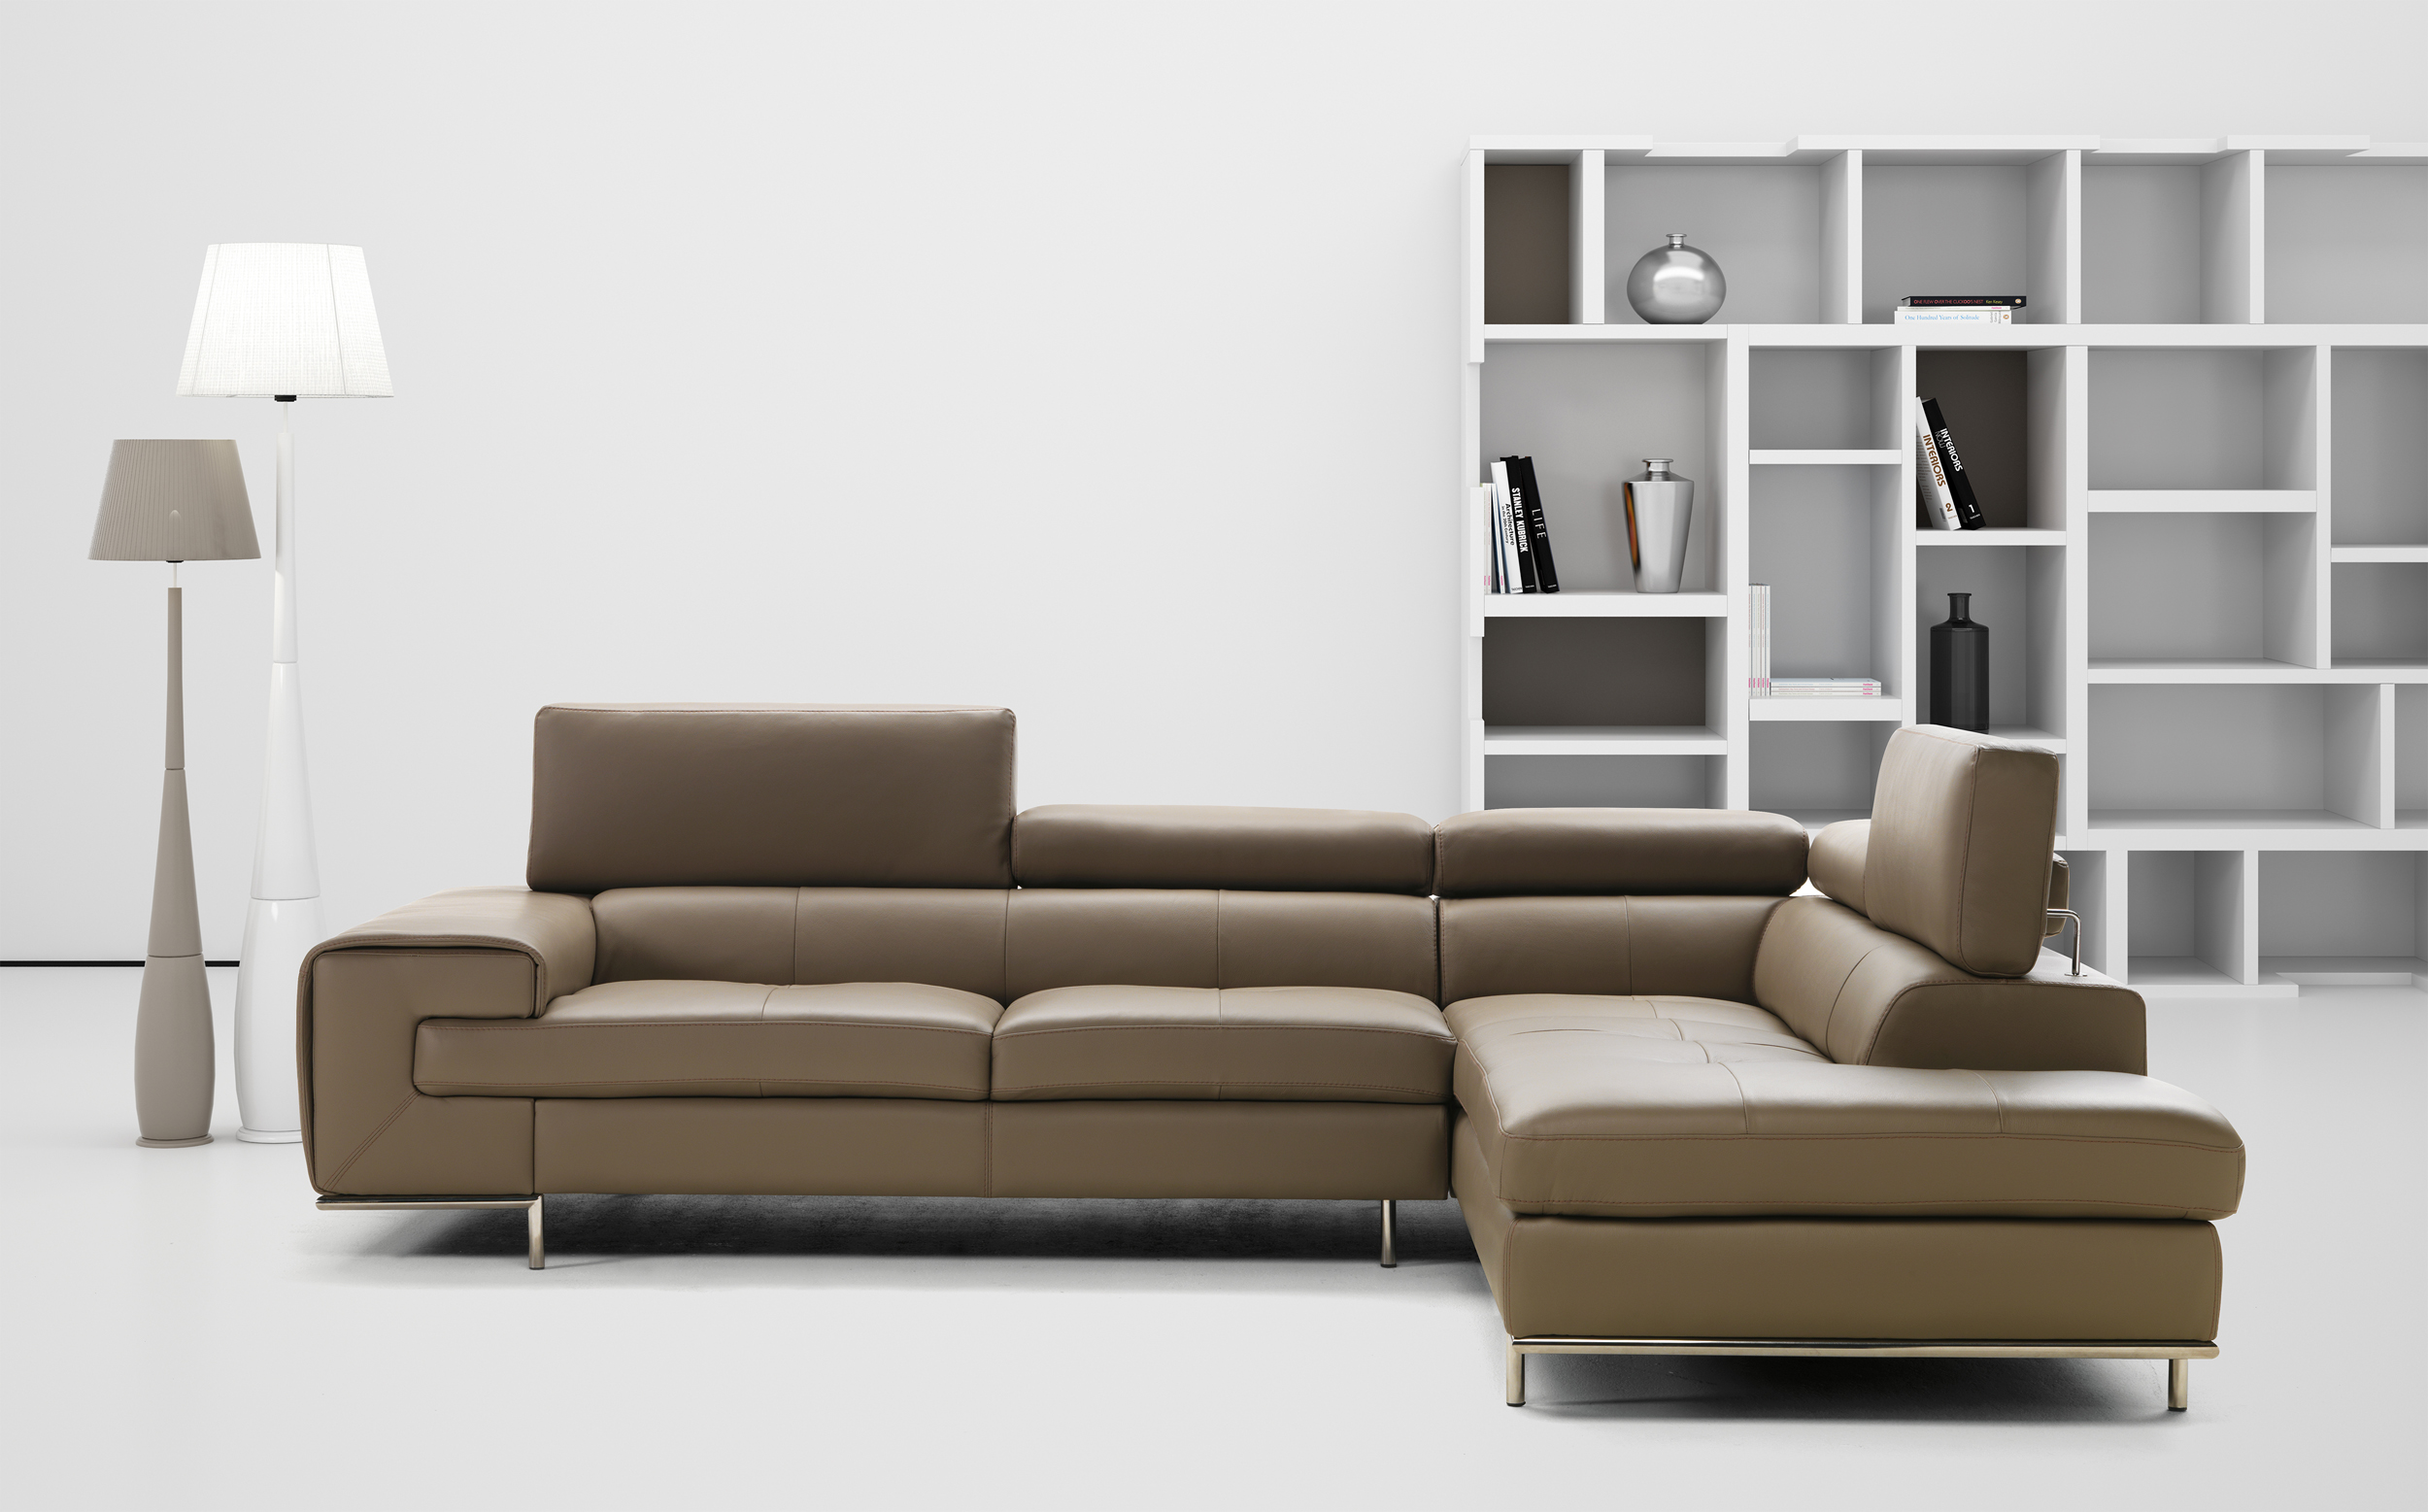 European Design, Italian Leather Living Room